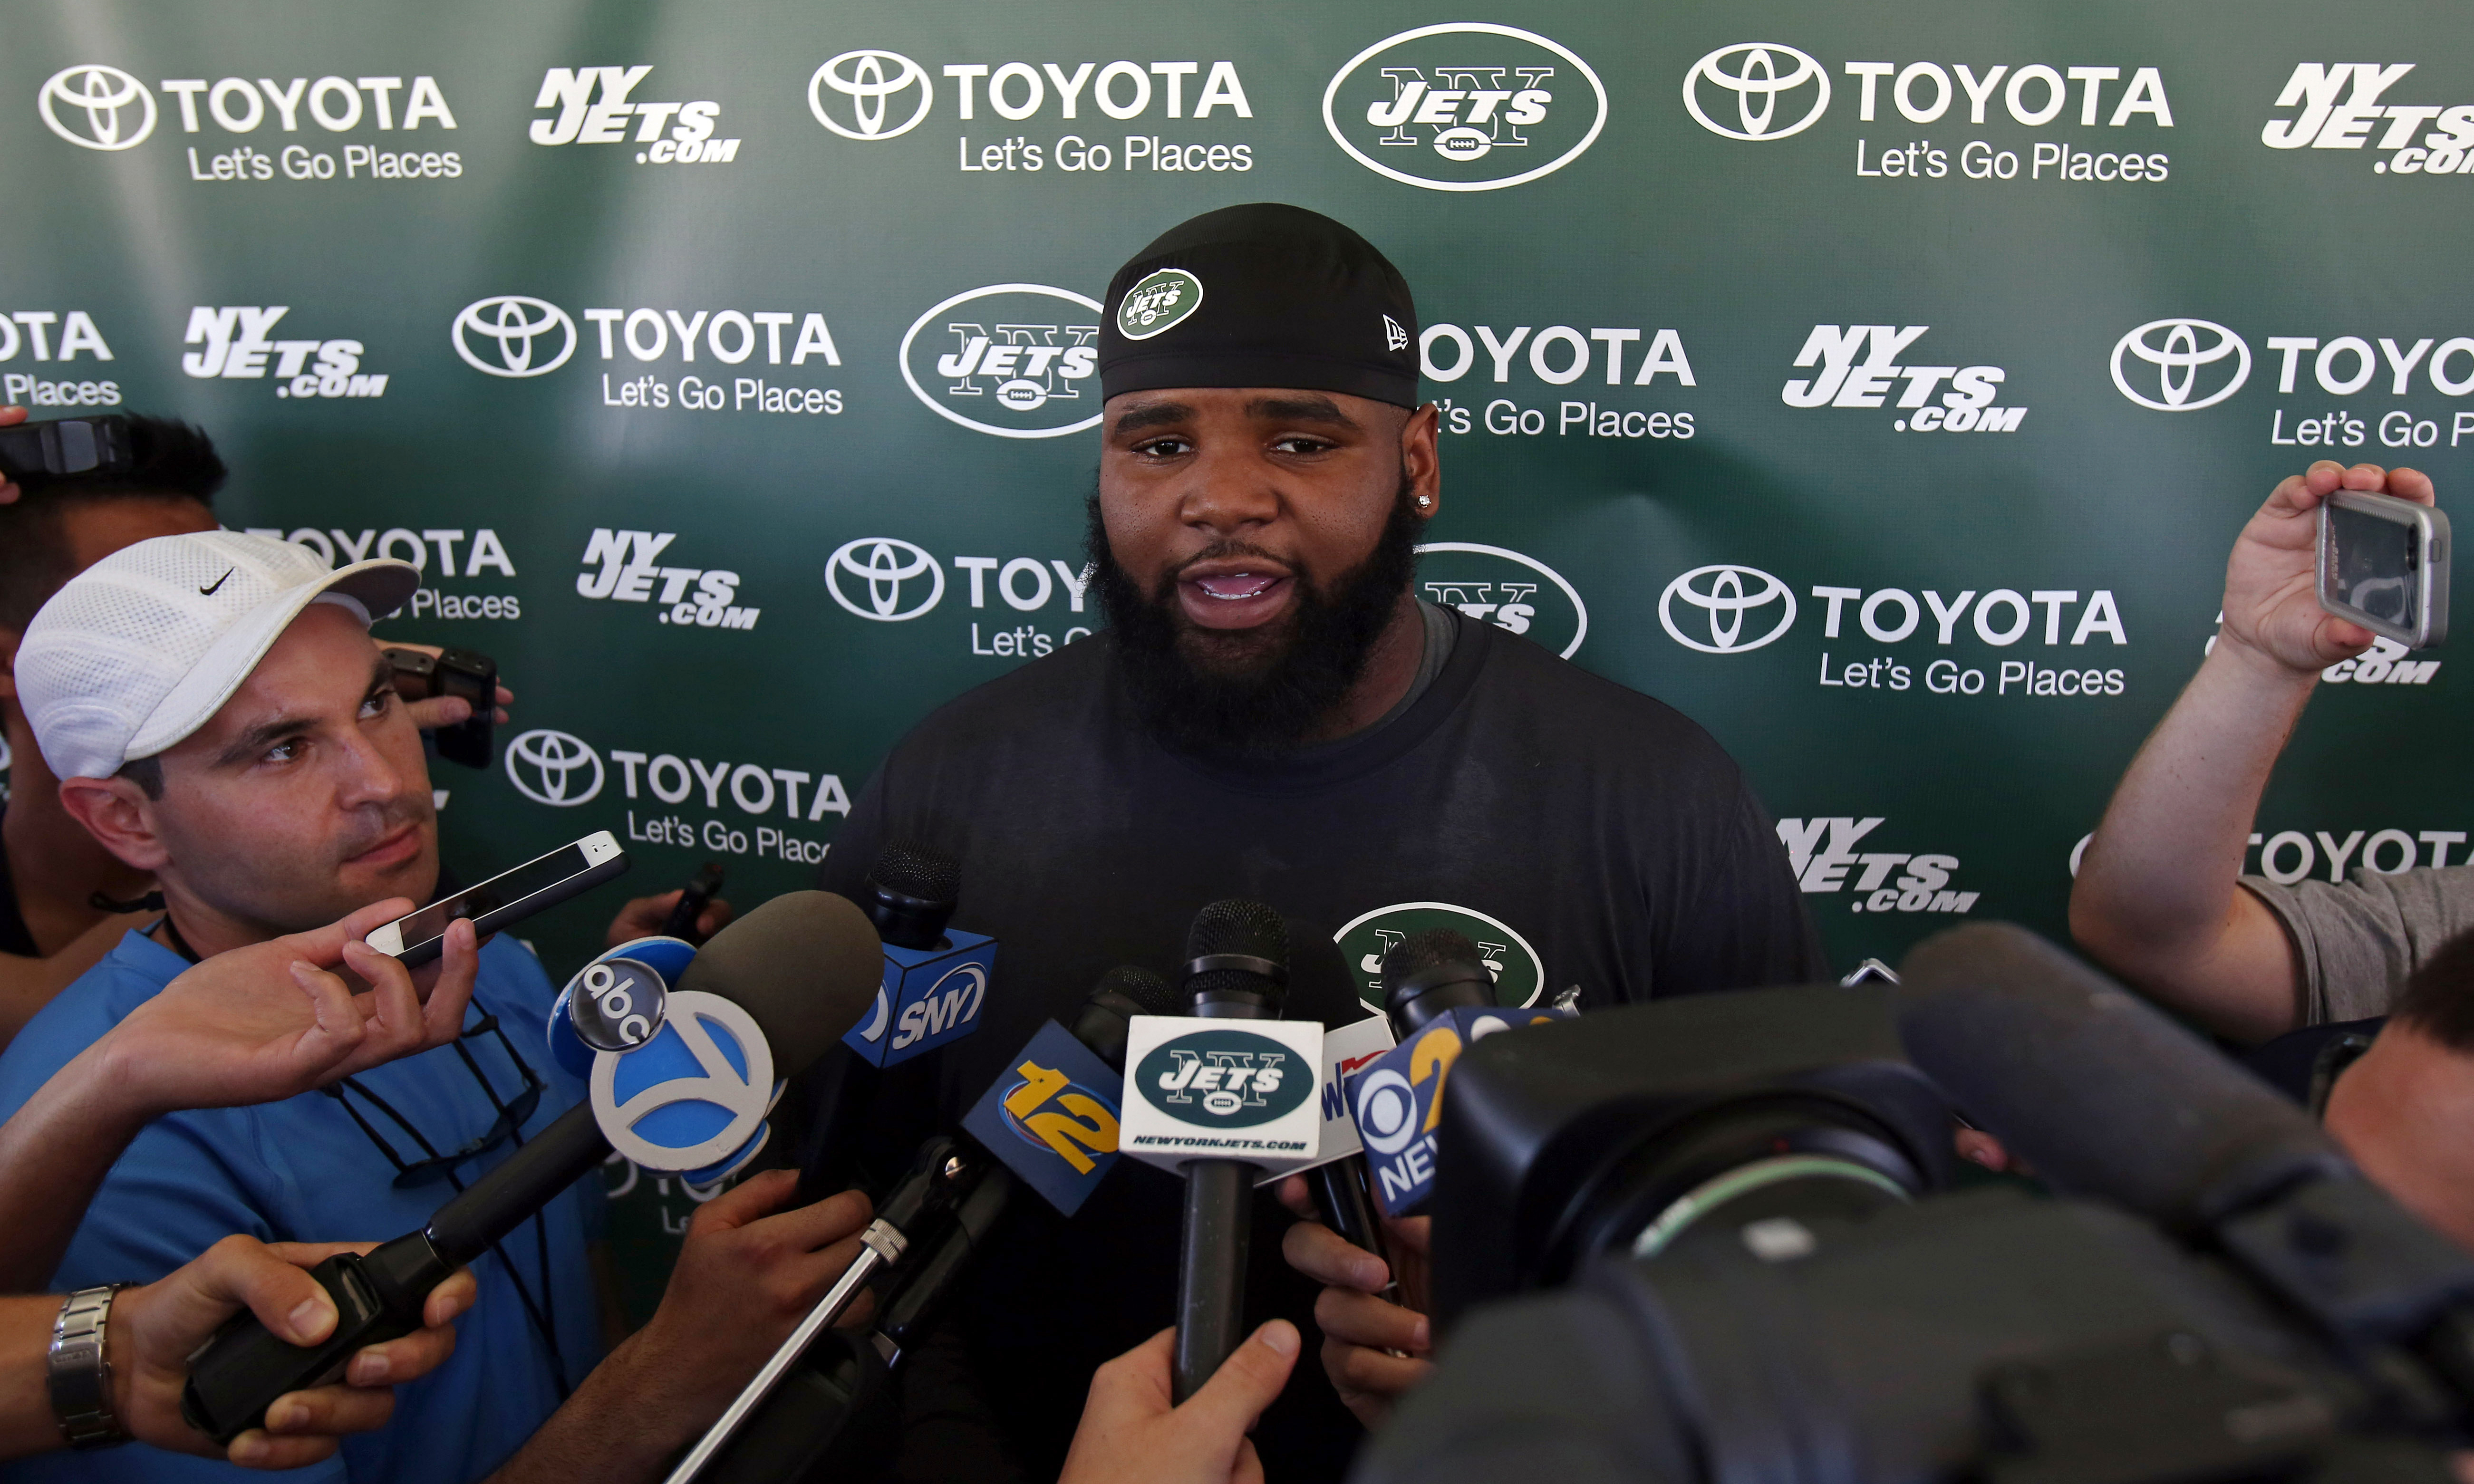 New York Jets defensive end Sheldon Richardson talks with reporters at NFL football training camp in Florham Park, N.J., Friday, July 31, 2015. (AP Photo/Adam Hunger)